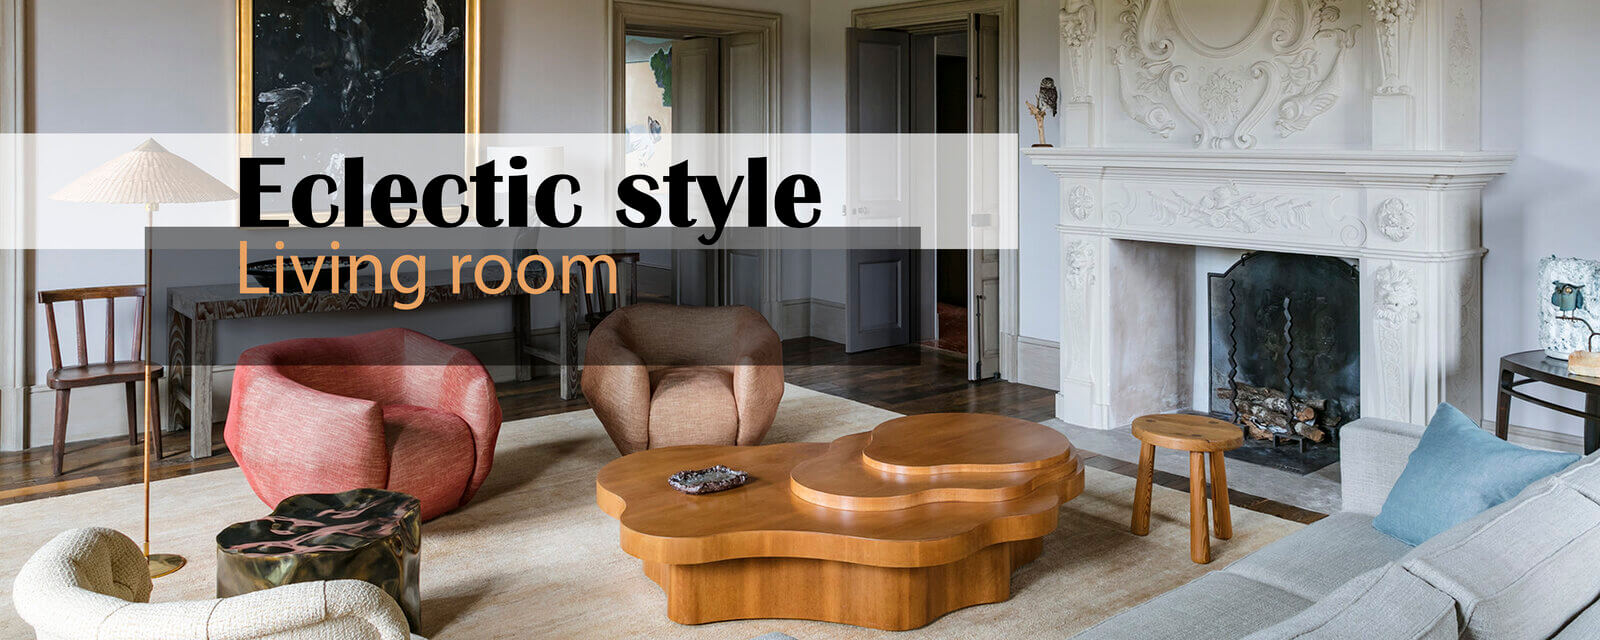 Eclectic Style | Living Room